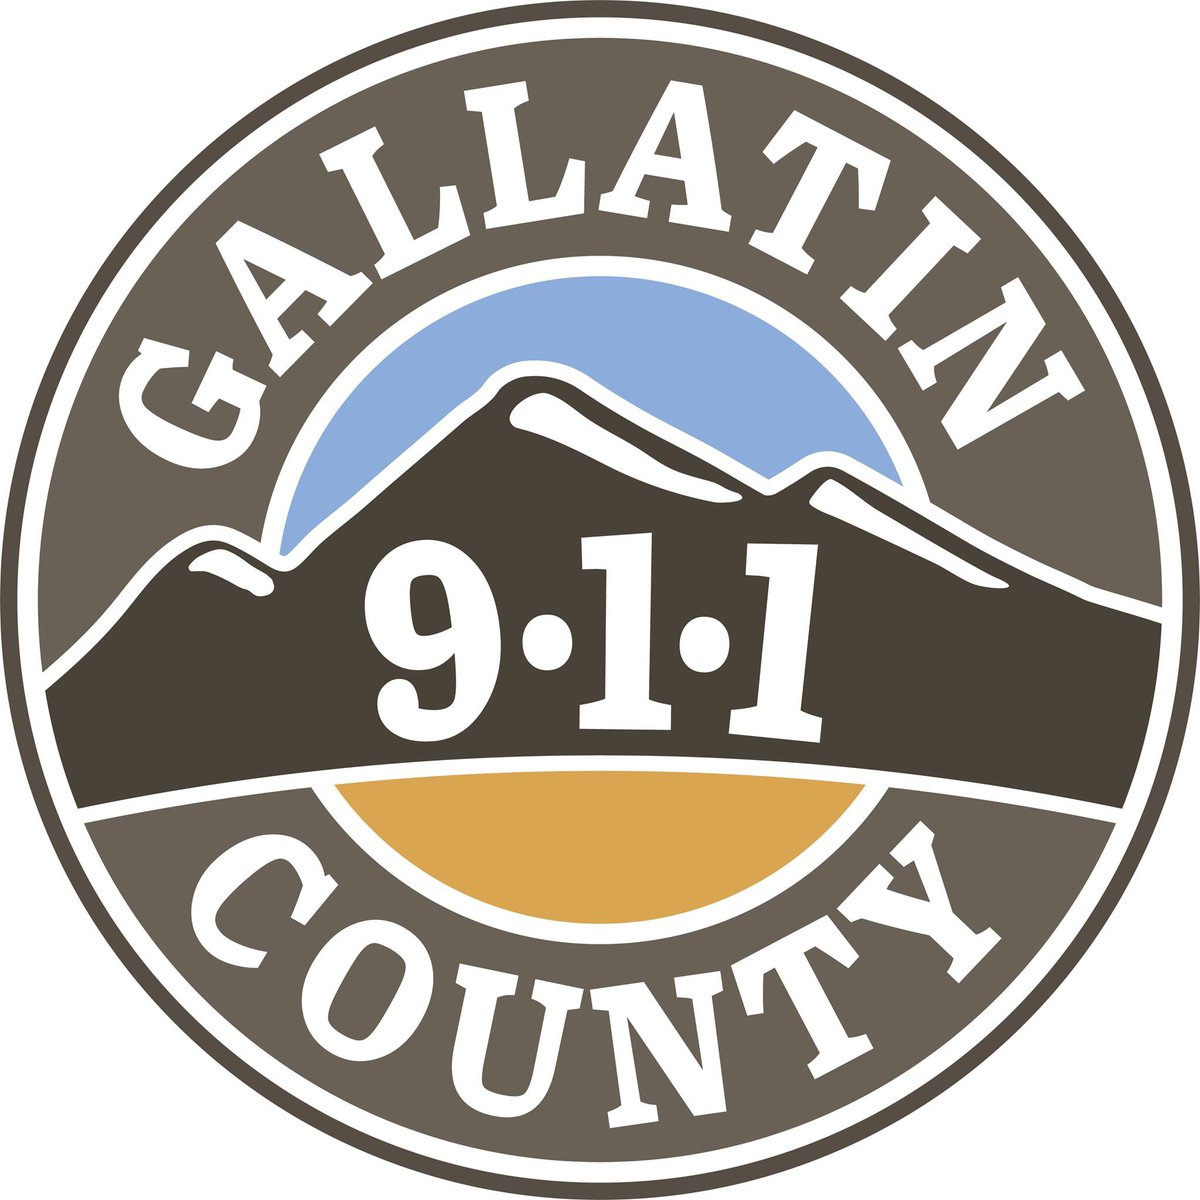 🚨Important Info🚨  Gallatin County 911 was notified this morning by Centurylink that we are experiencing phone issues in the Bozeman area. Some residents may not be able to call 911. If you try to call 911 & can't get through please call 406-582-2100 or 406-582-2000.